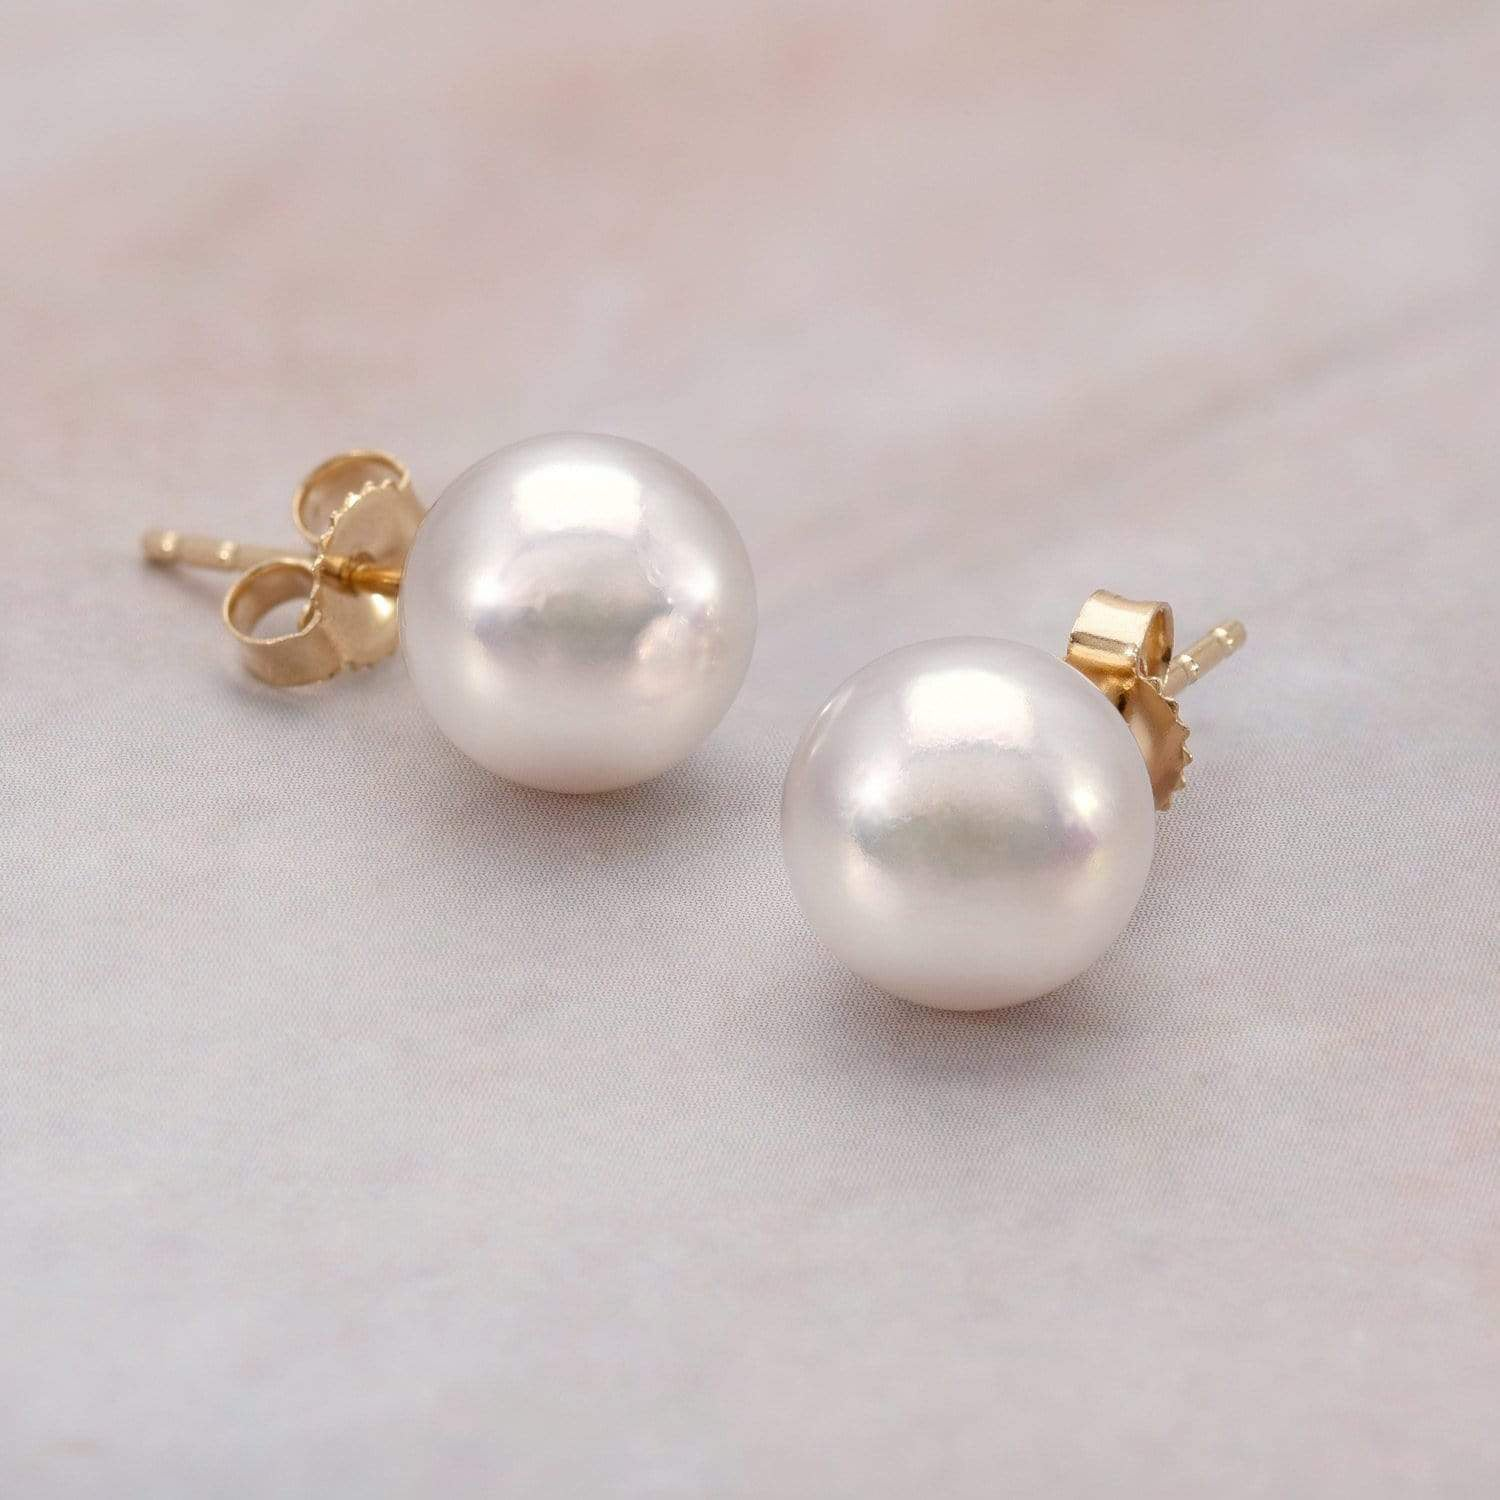 Featured Pearls of Joy Product Spotlight: Hanadama Akoya Pearl Stud Earrings 8.5mm